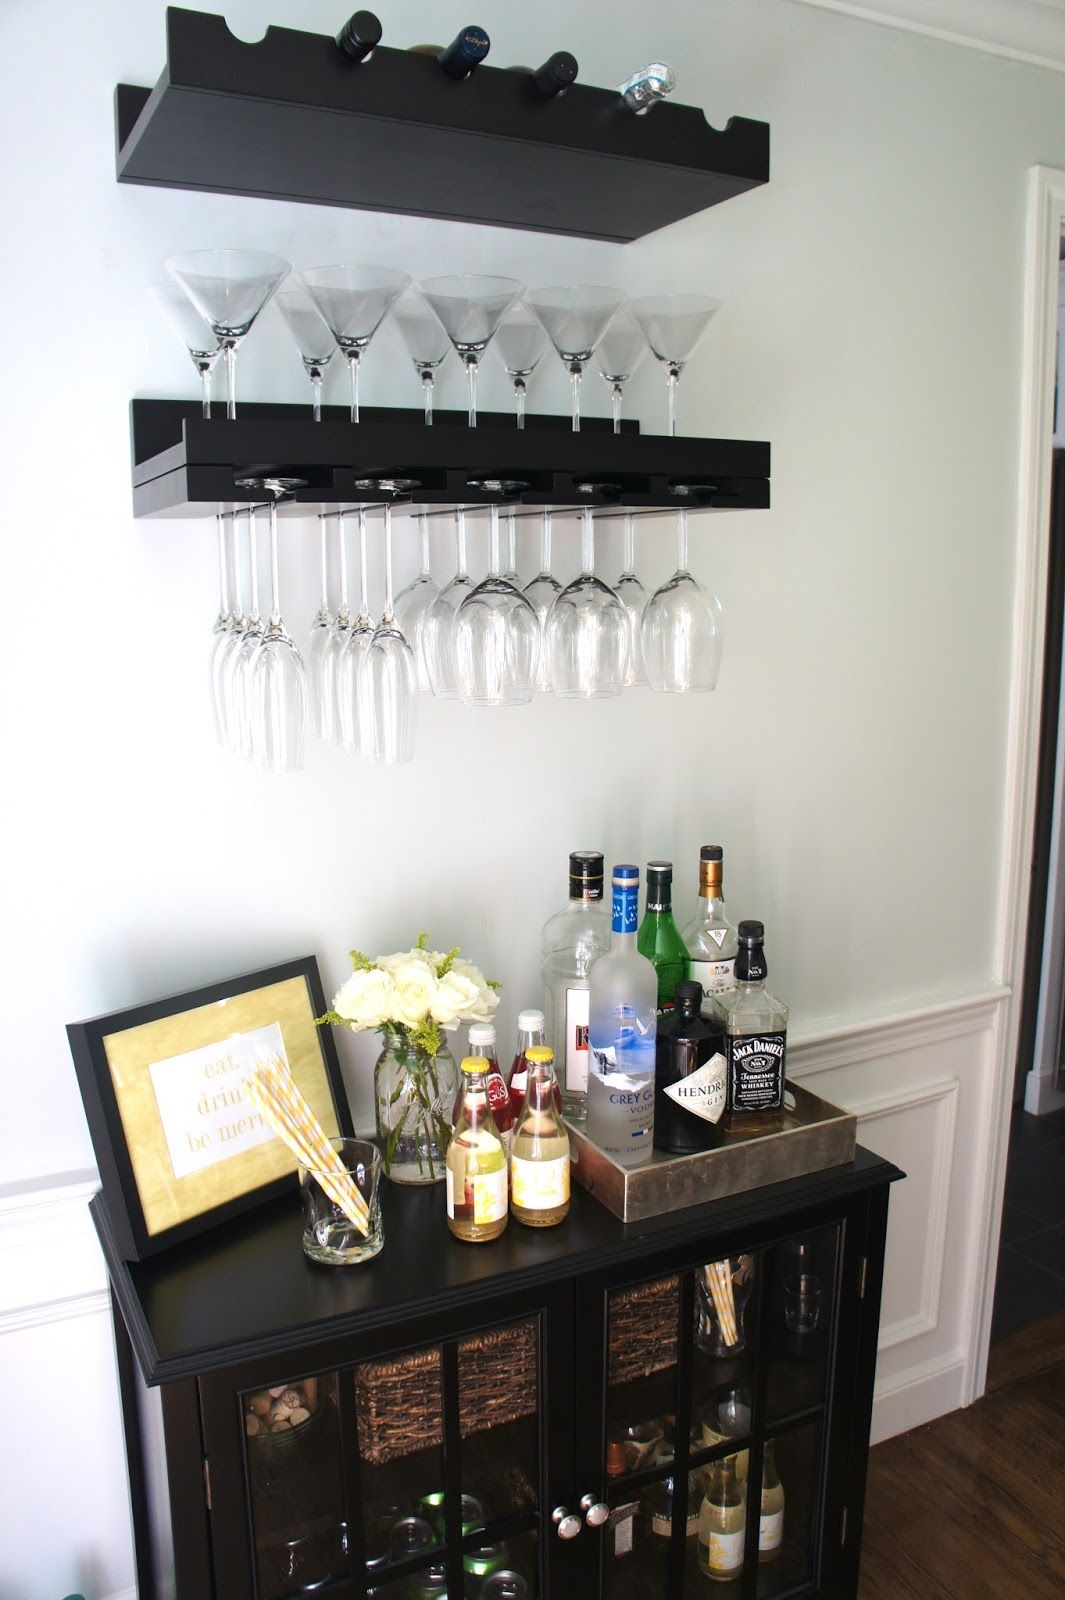 An Organized Home Bar Area | Pinterest | Room, Bar and Bar areas